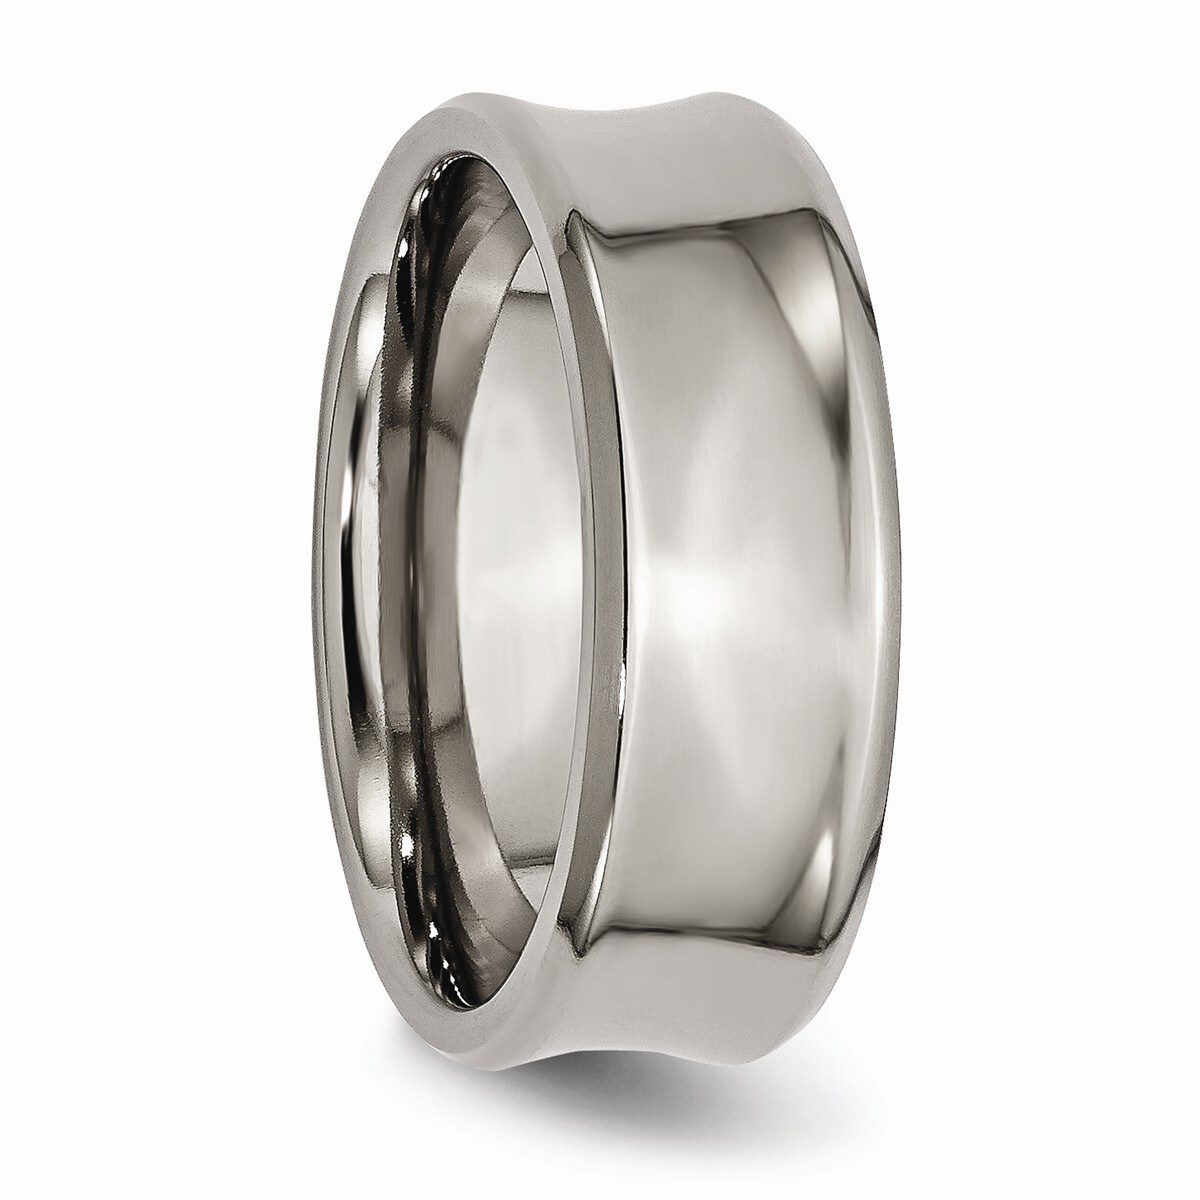 Lovely Titanium Concave 8mm Beveled Edge Wedding Ring Band Size 9.50 Classic Fashion Jewelry & Watches